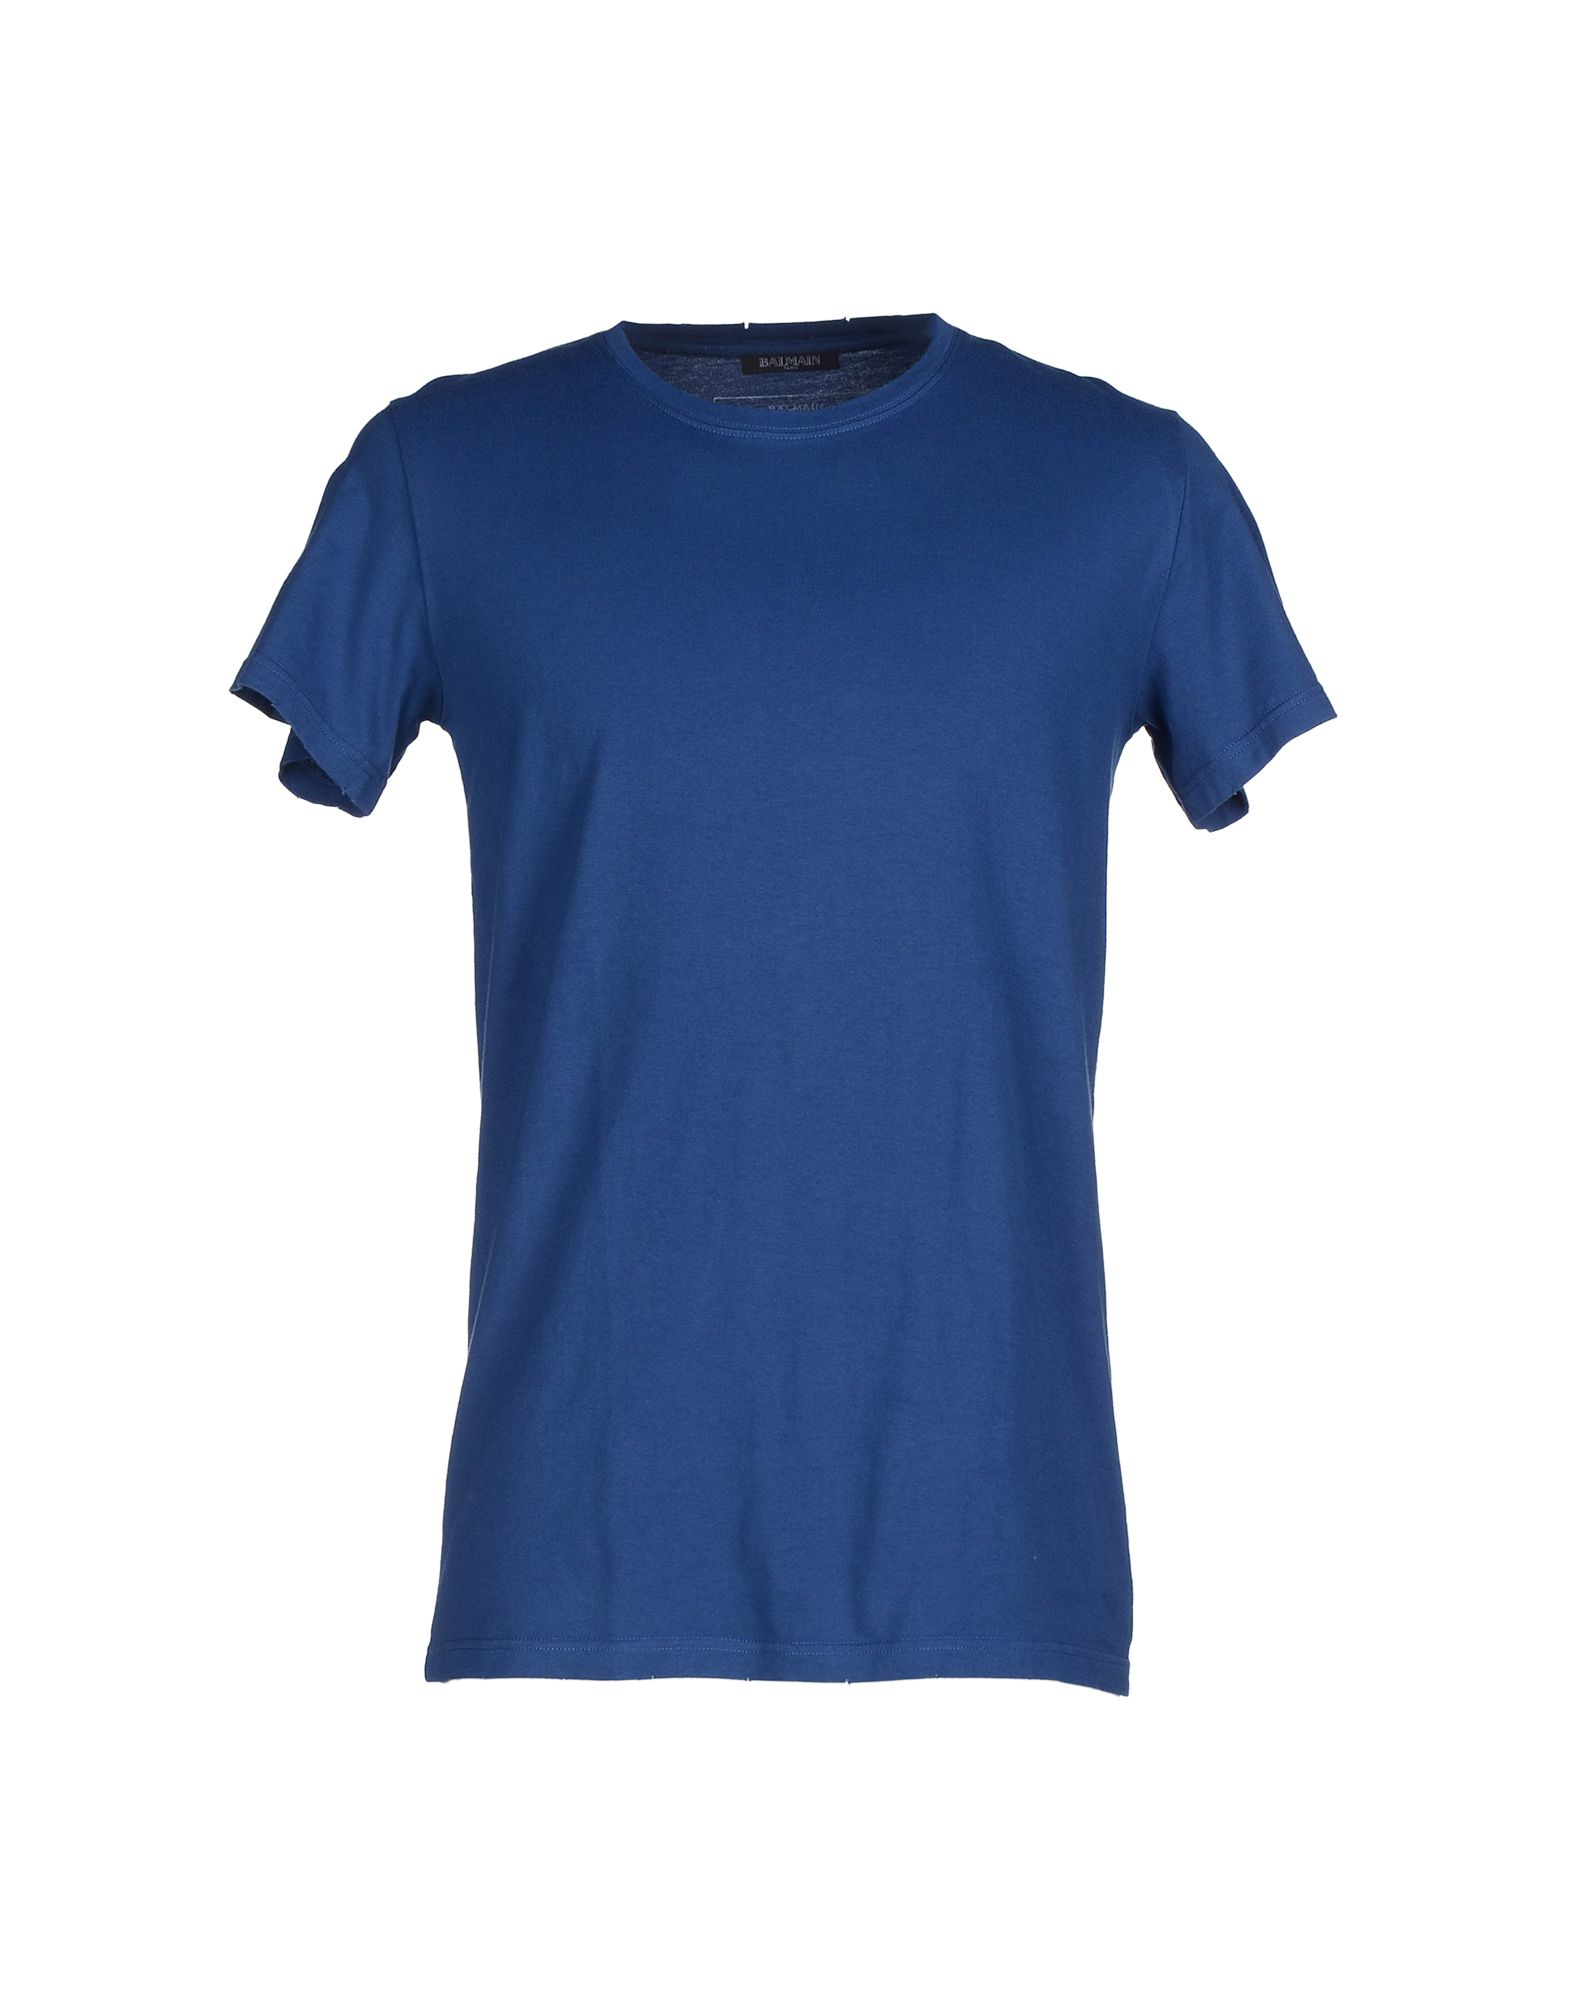 balmain t shirt in blue for men lyst. Black Bedroom Furniture Sets. Home Design Ideas